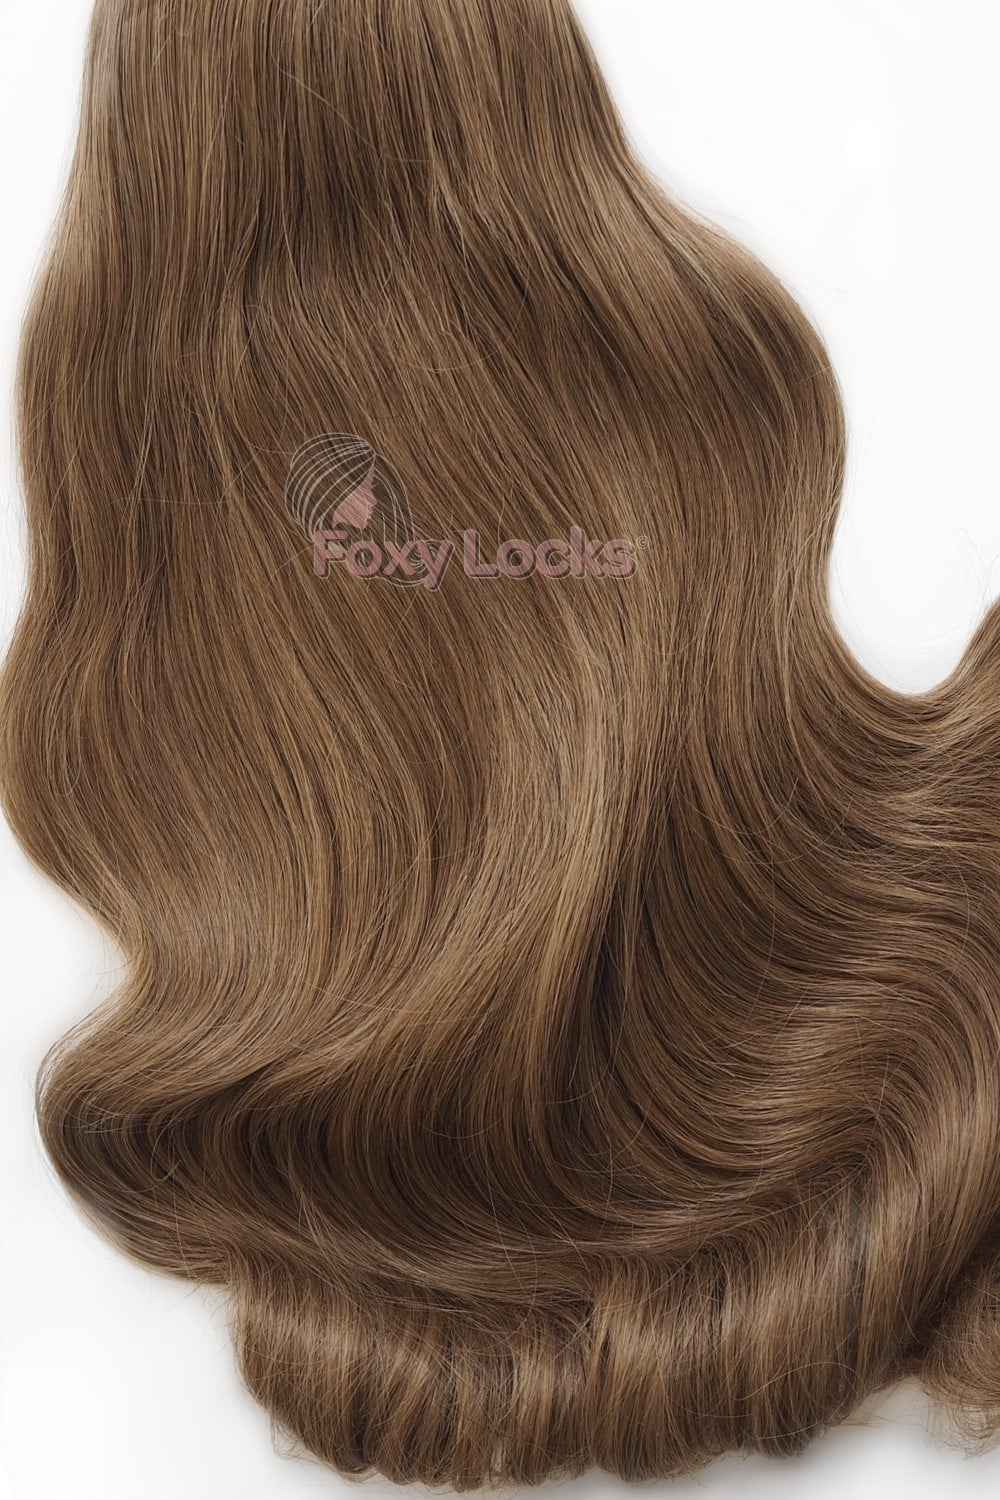 Sunkissed Brown Regular Seamless Clip In Human Hair